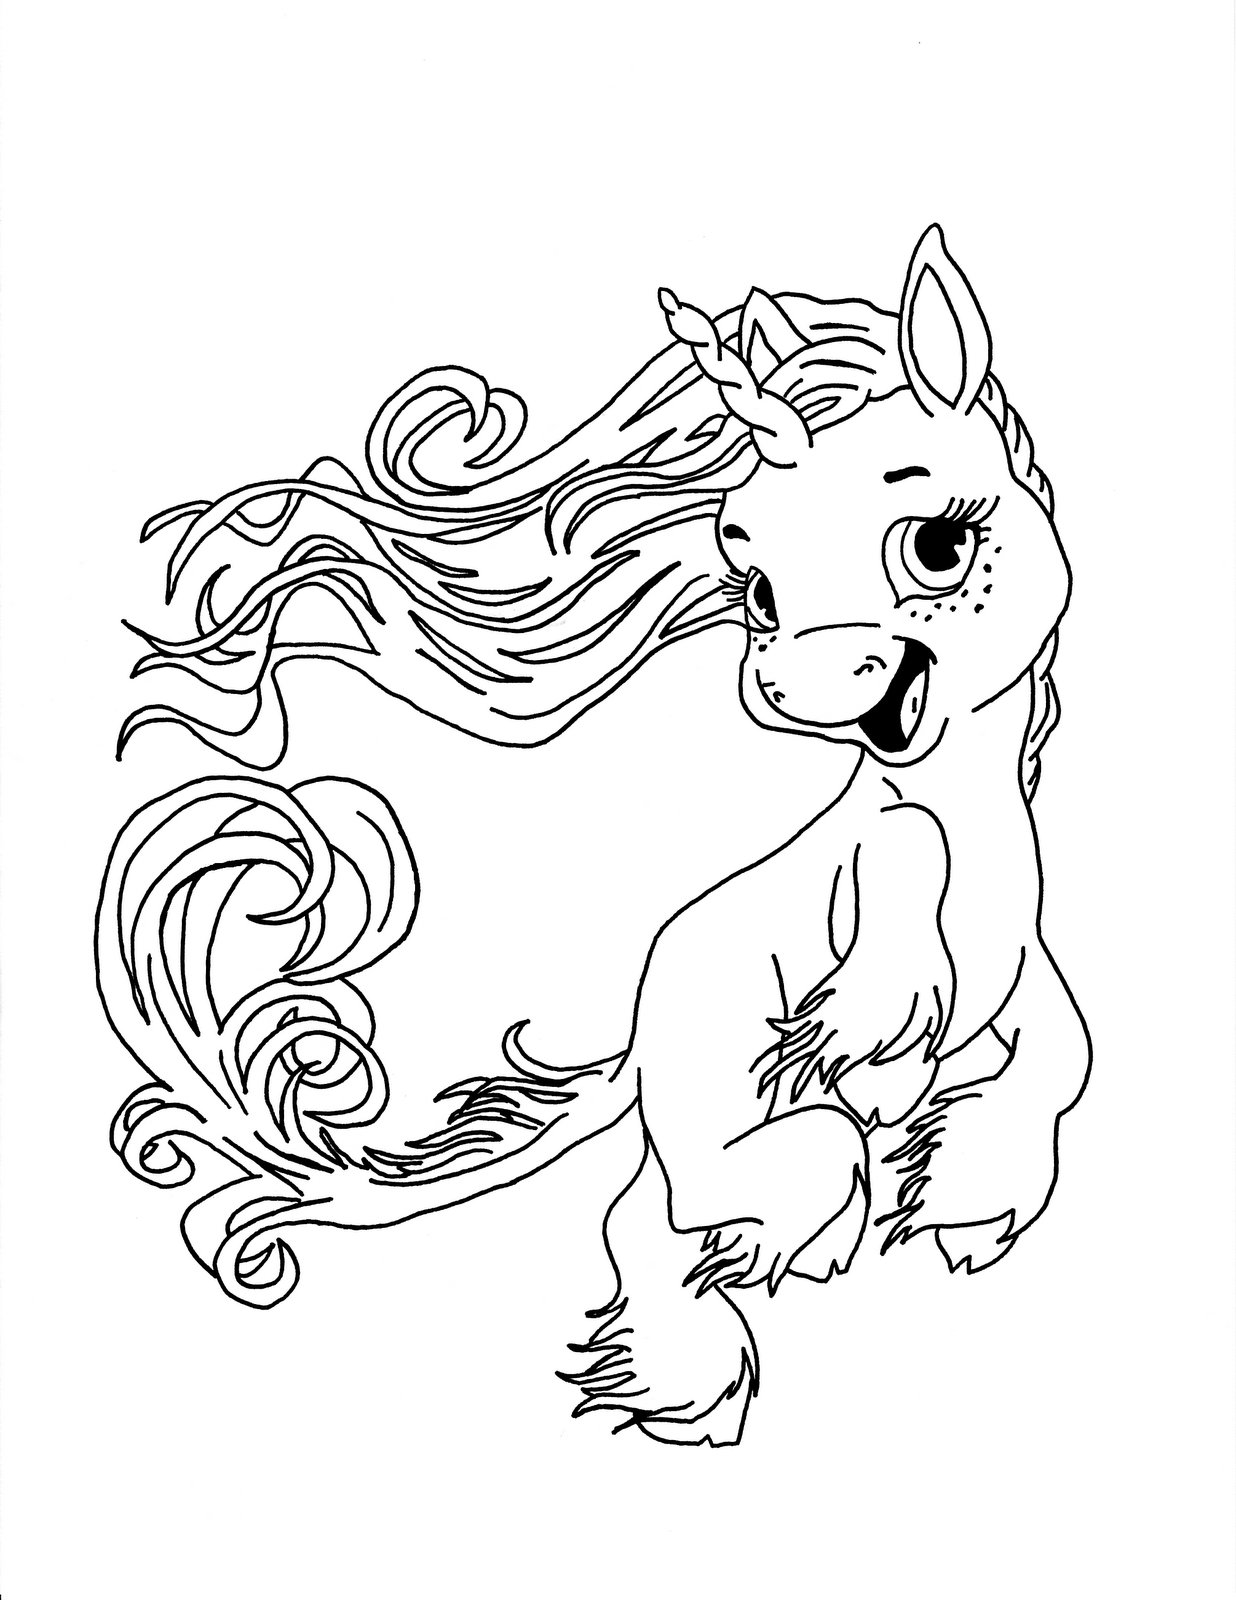 Unicorns Colotring Pages Unicorn Coloring Pages Unicorn Pictures To Color Horse Coloring Pages